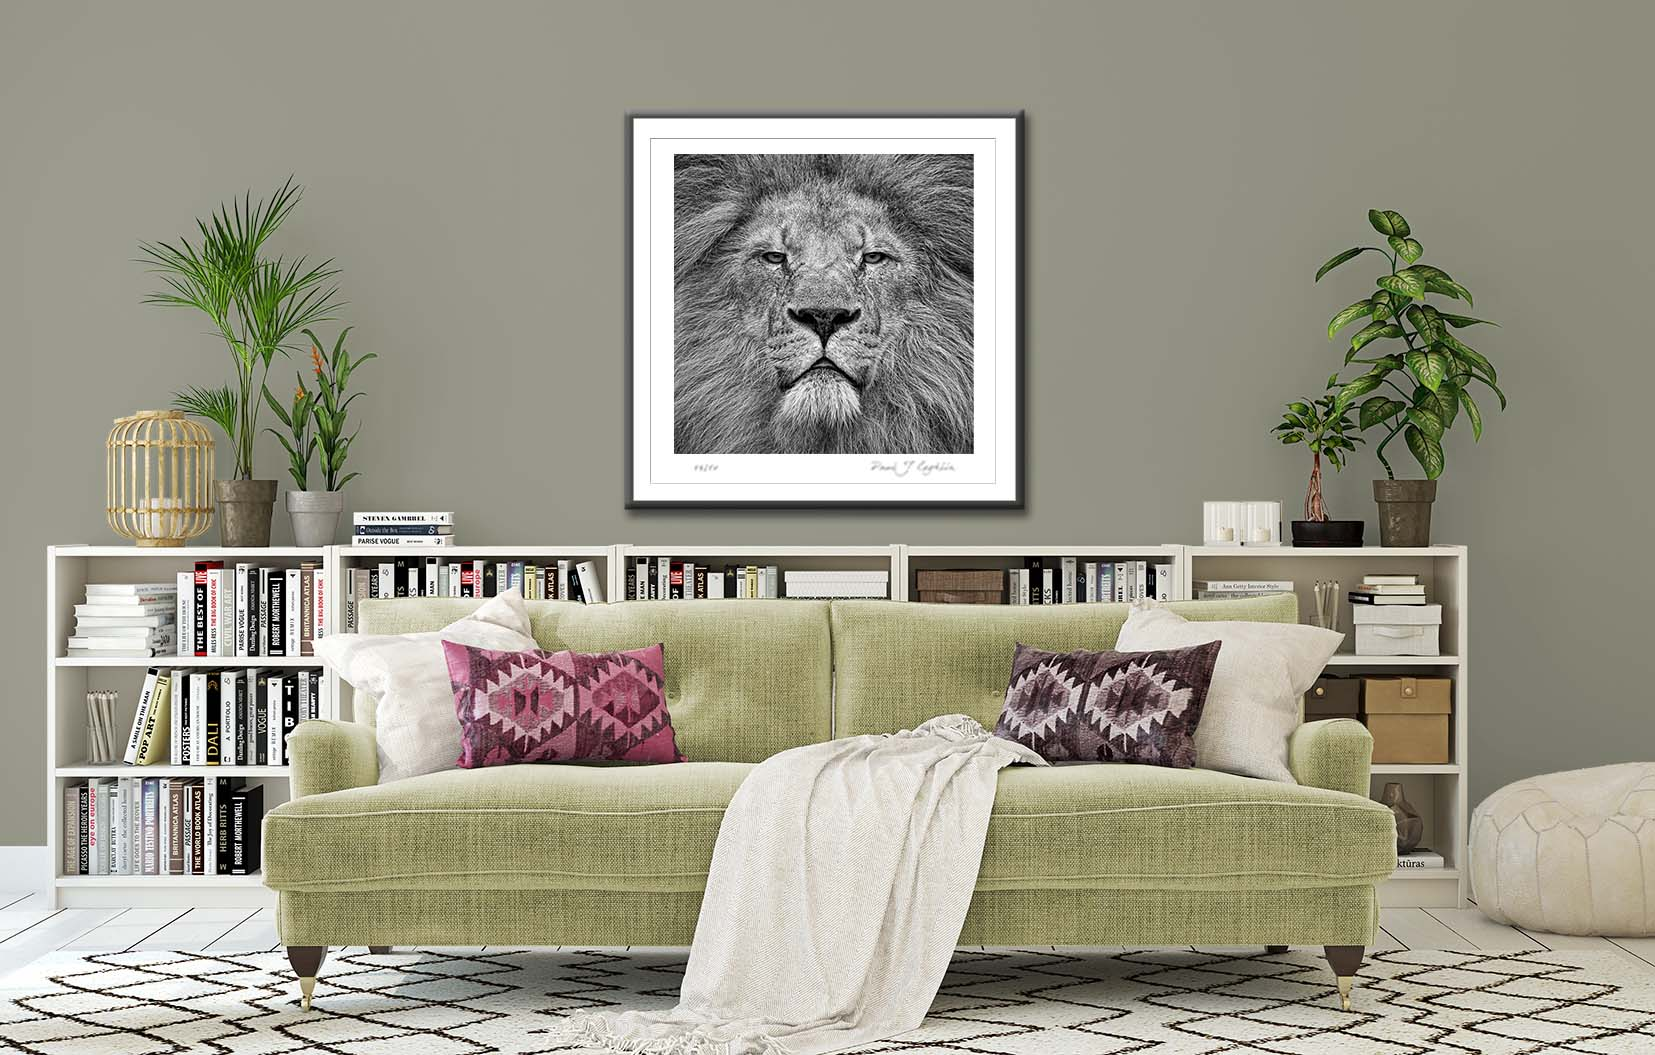 Lion photographic print by fine art photographer Paul Coghlin. In situ example.